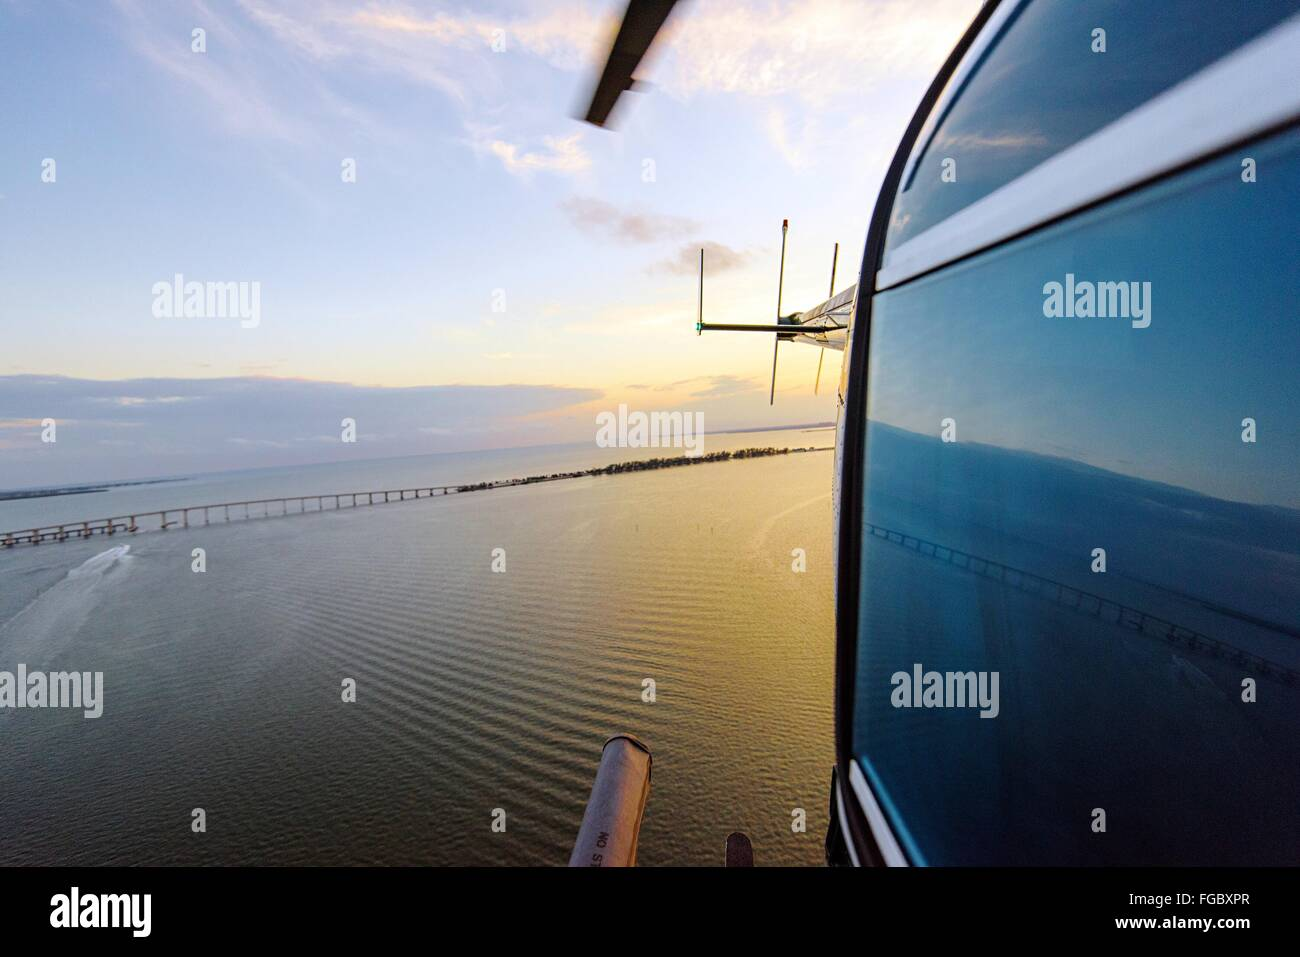 Cropped Image Of Helicopter Flying Over Sea Against Sky - Stock Image